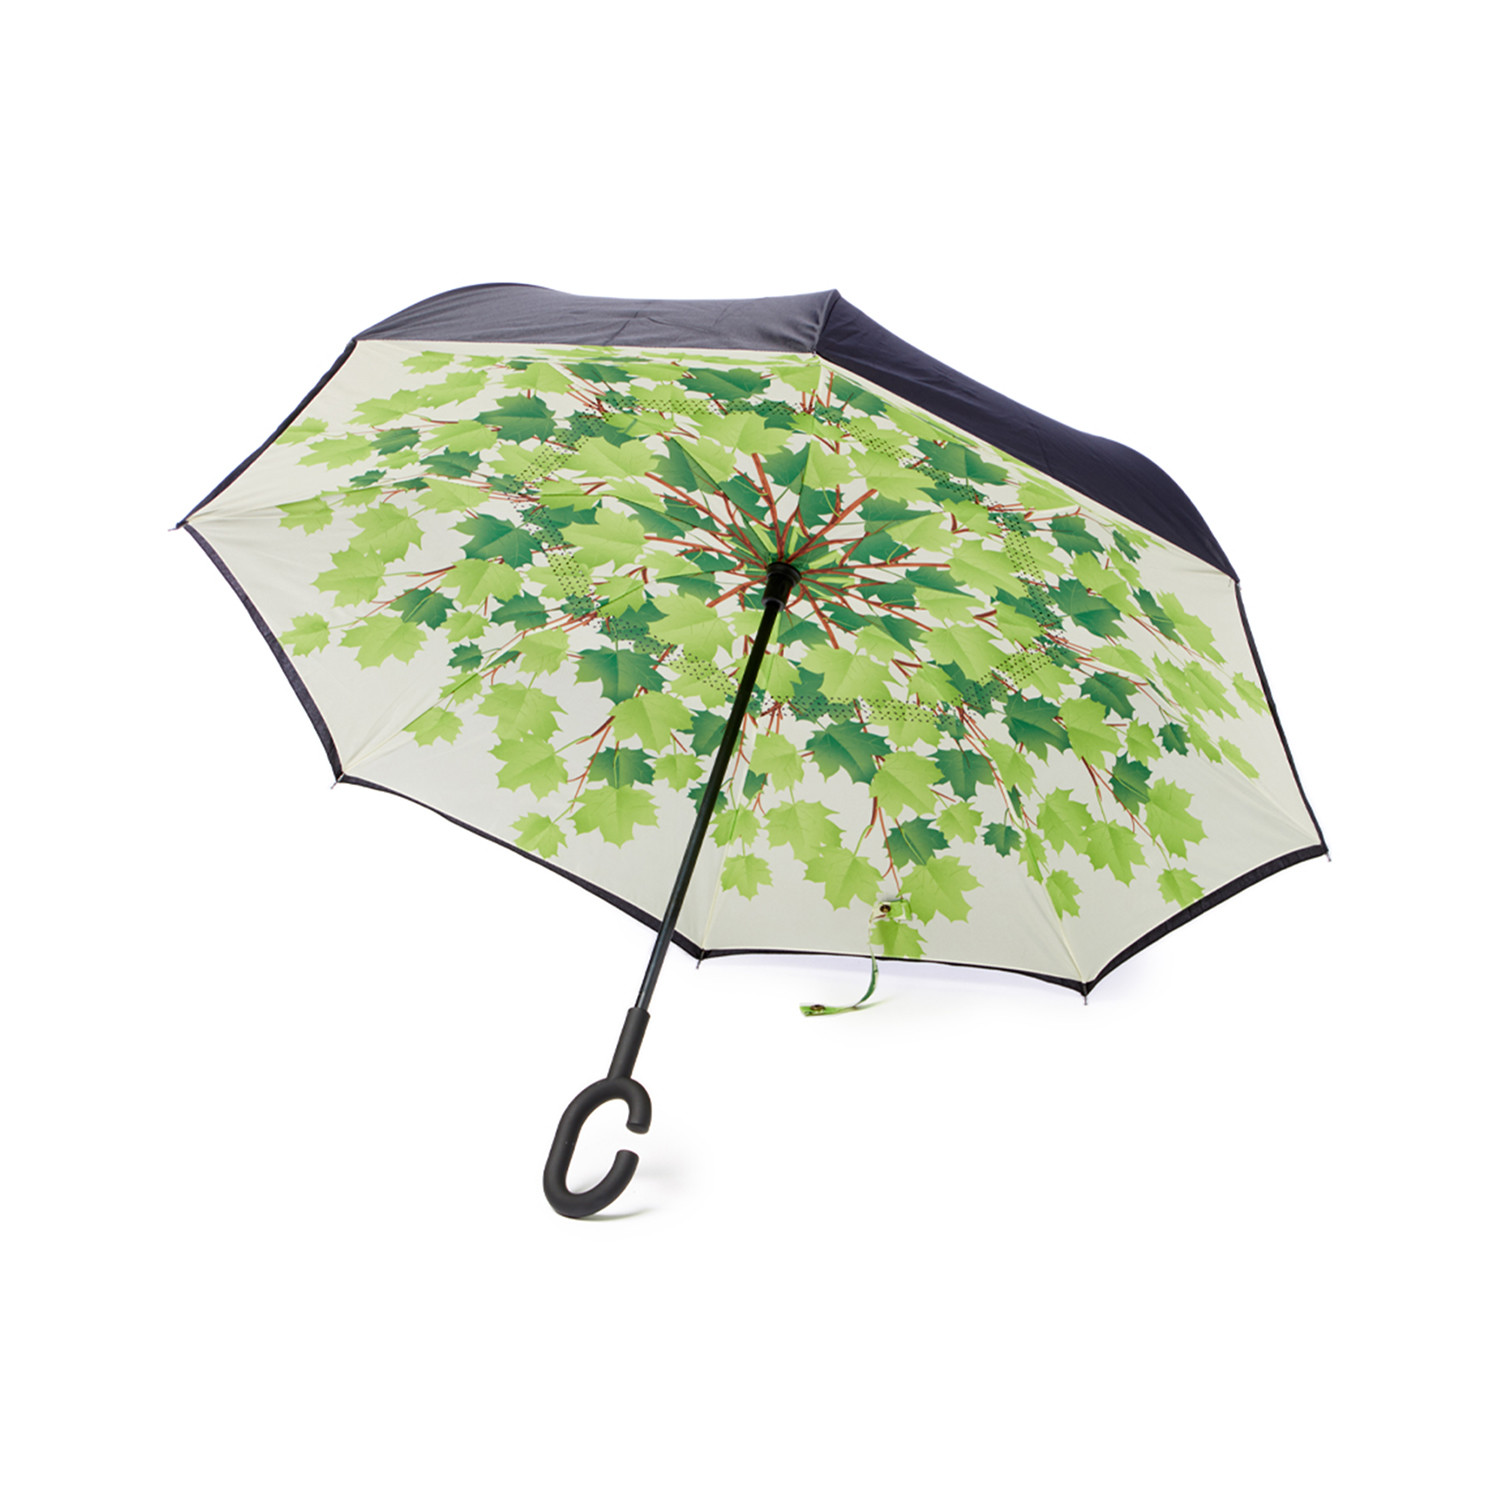 Upside Down Umbrellas // UU003 // Reversible